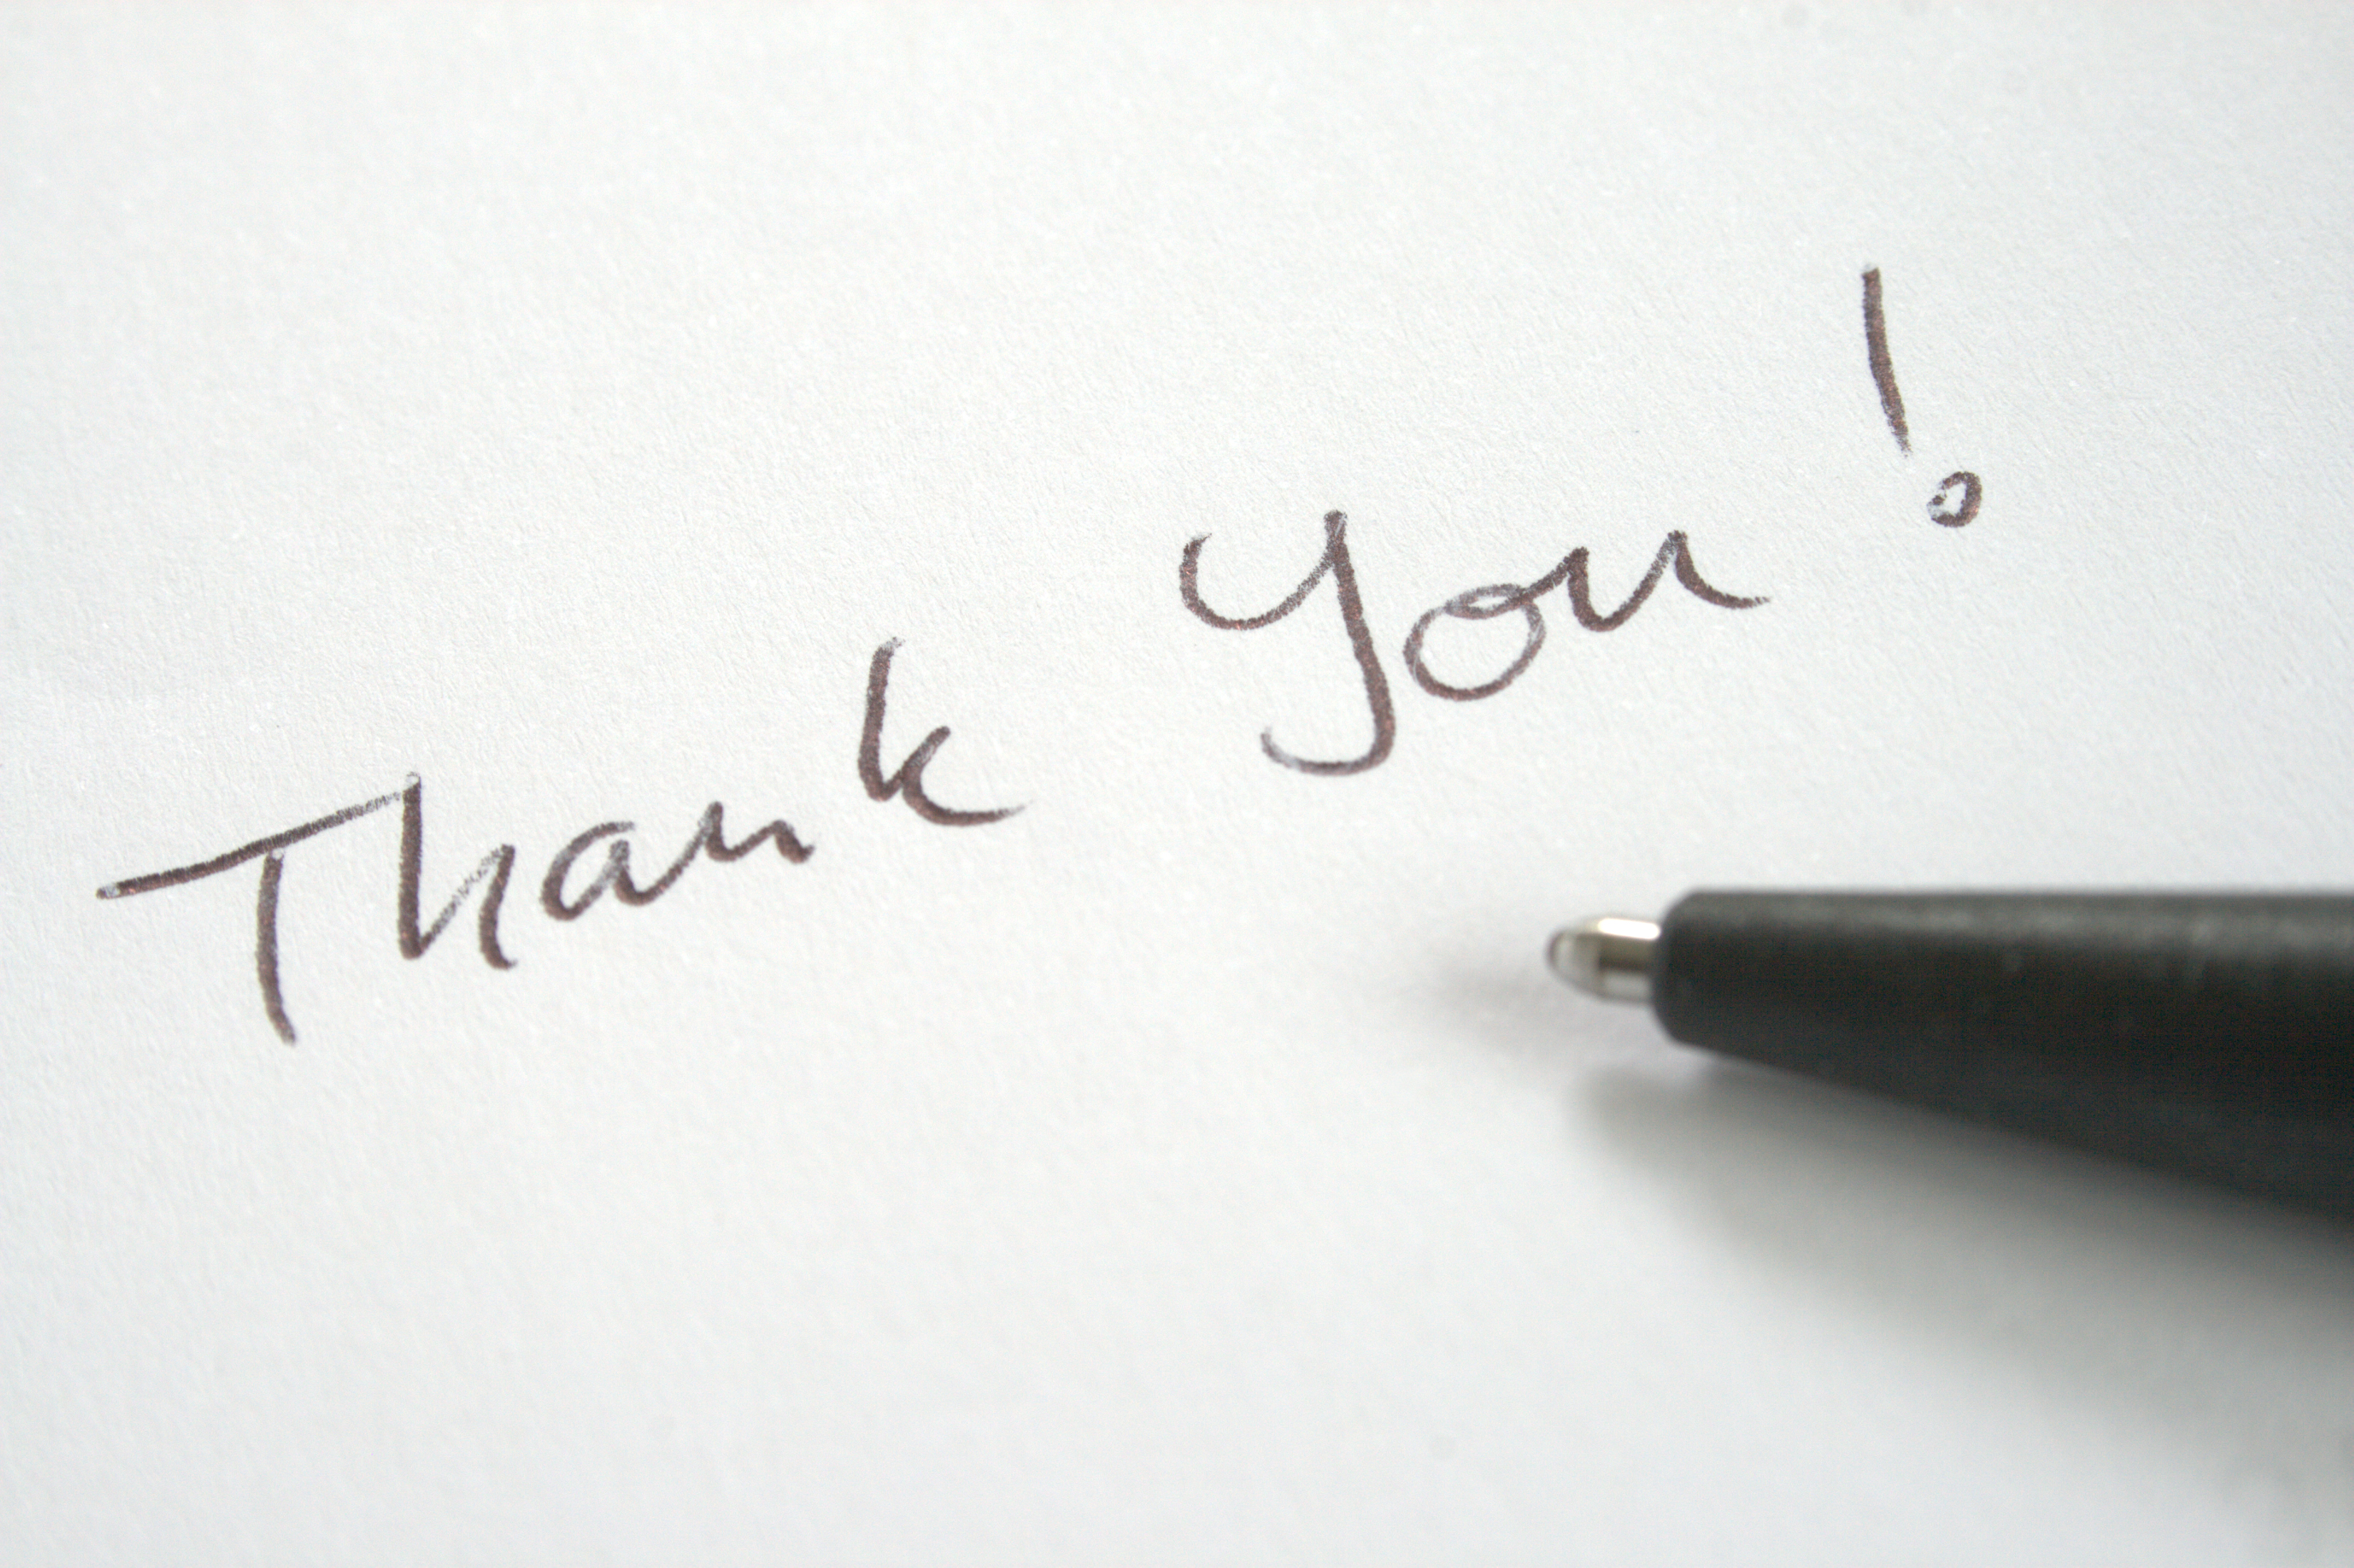 Stock photo of pen writing the words thank you on a piece of paper